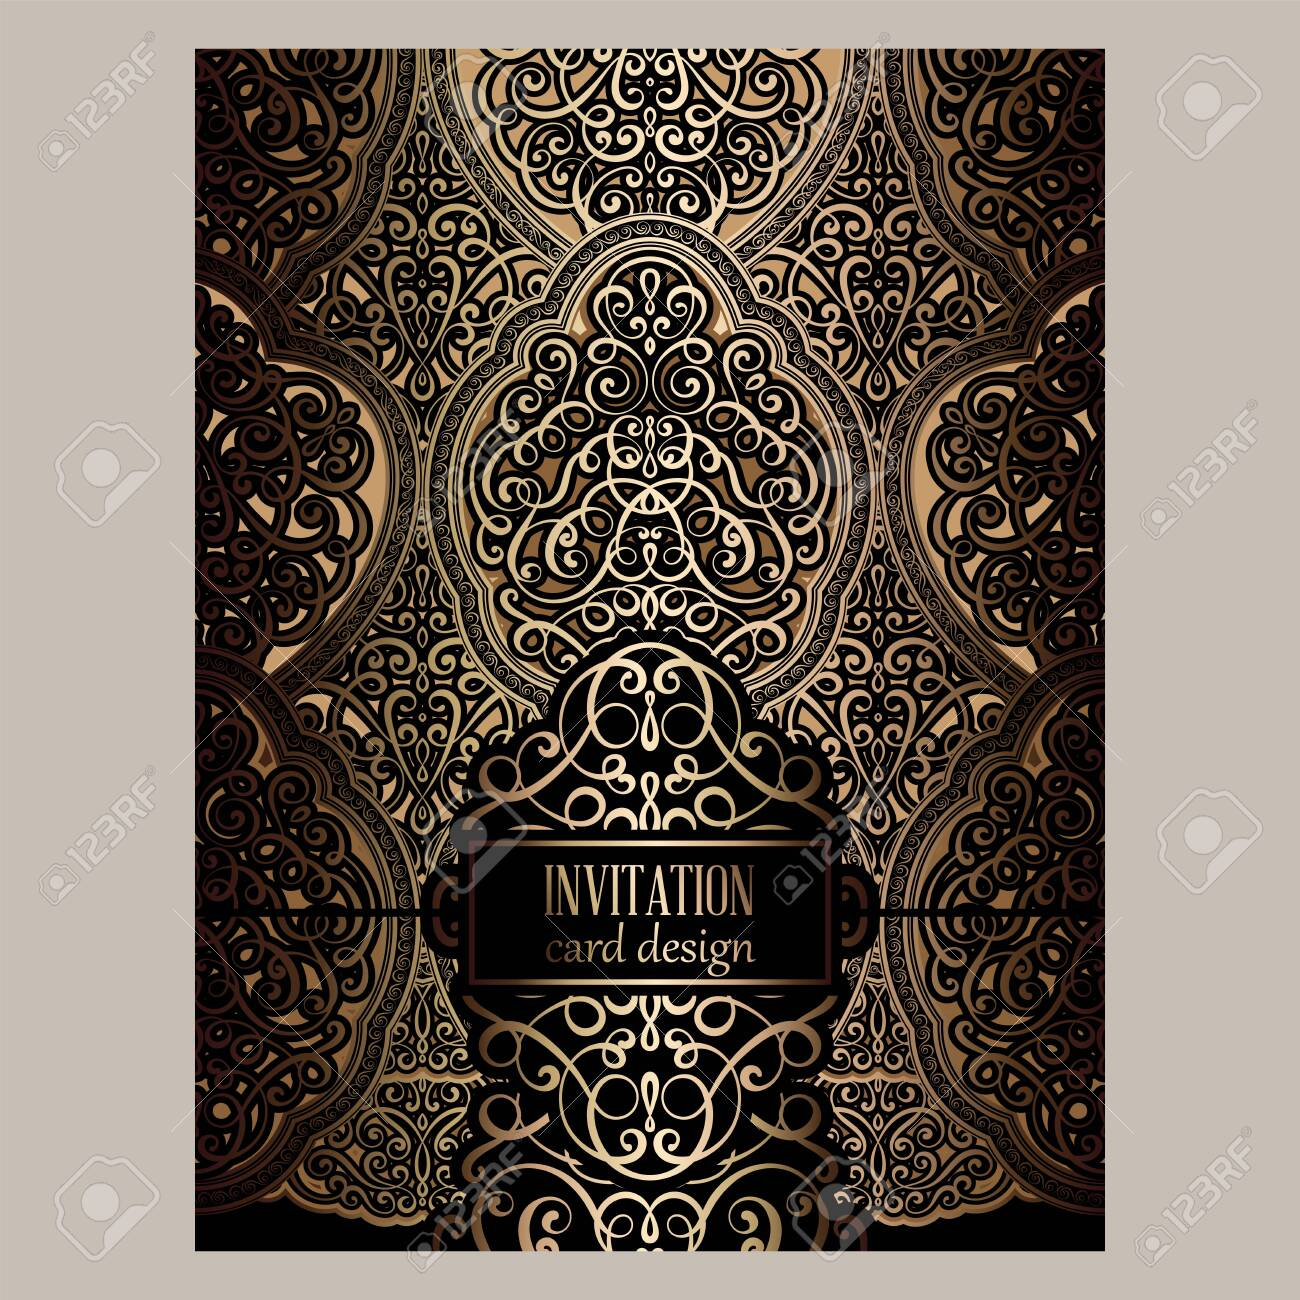 Wedding Invitation Card With Black And Gold Shiny Eastern And